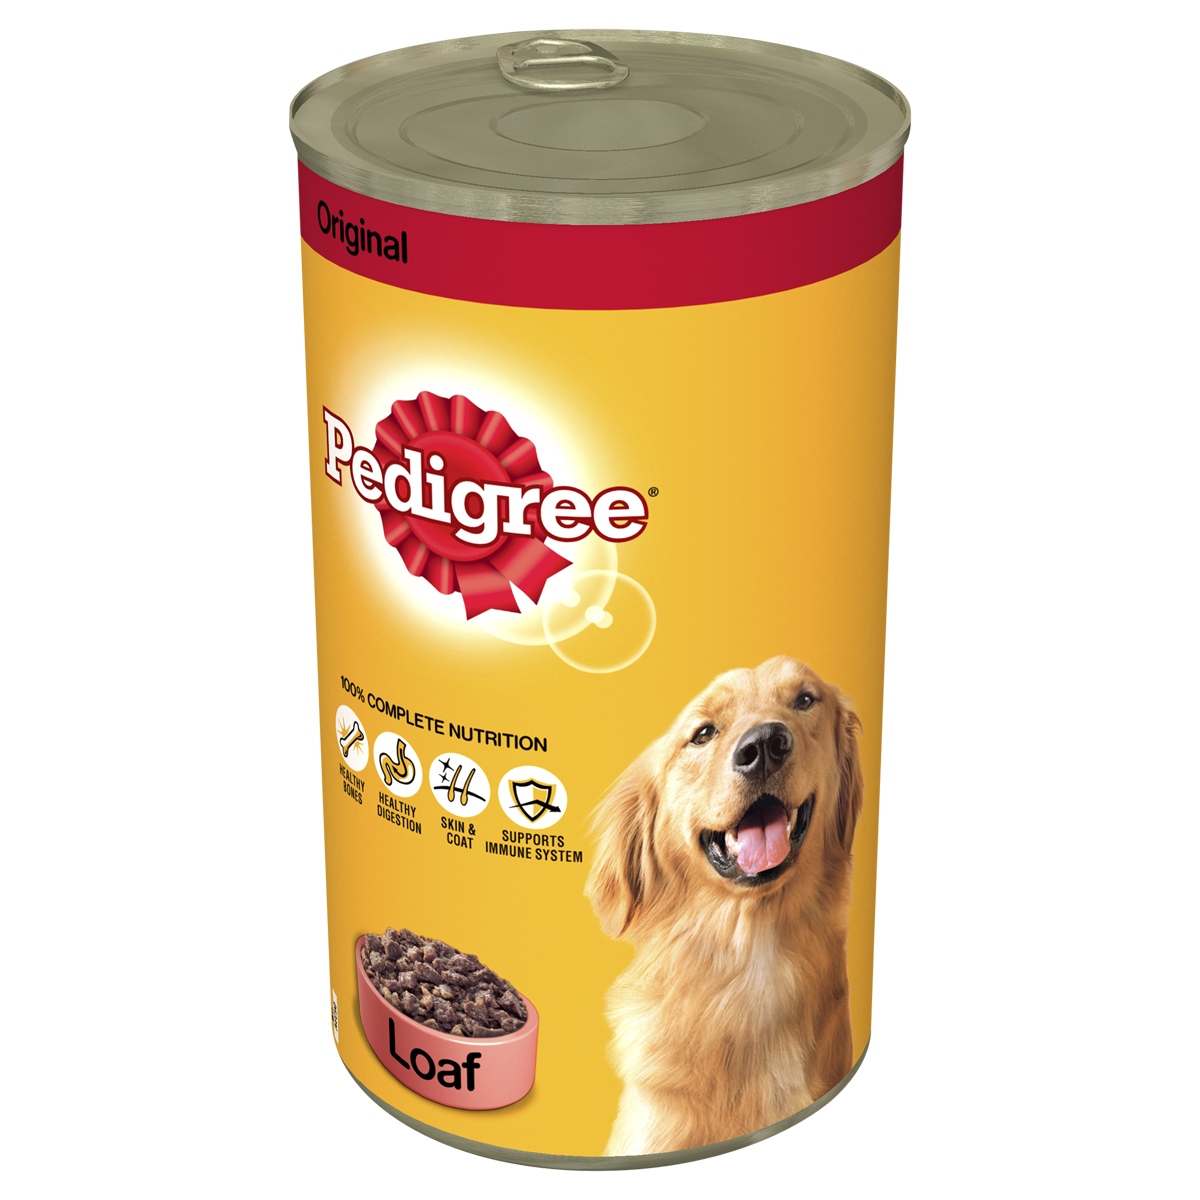 Pedigree Adult Original in Loaf Dog Food